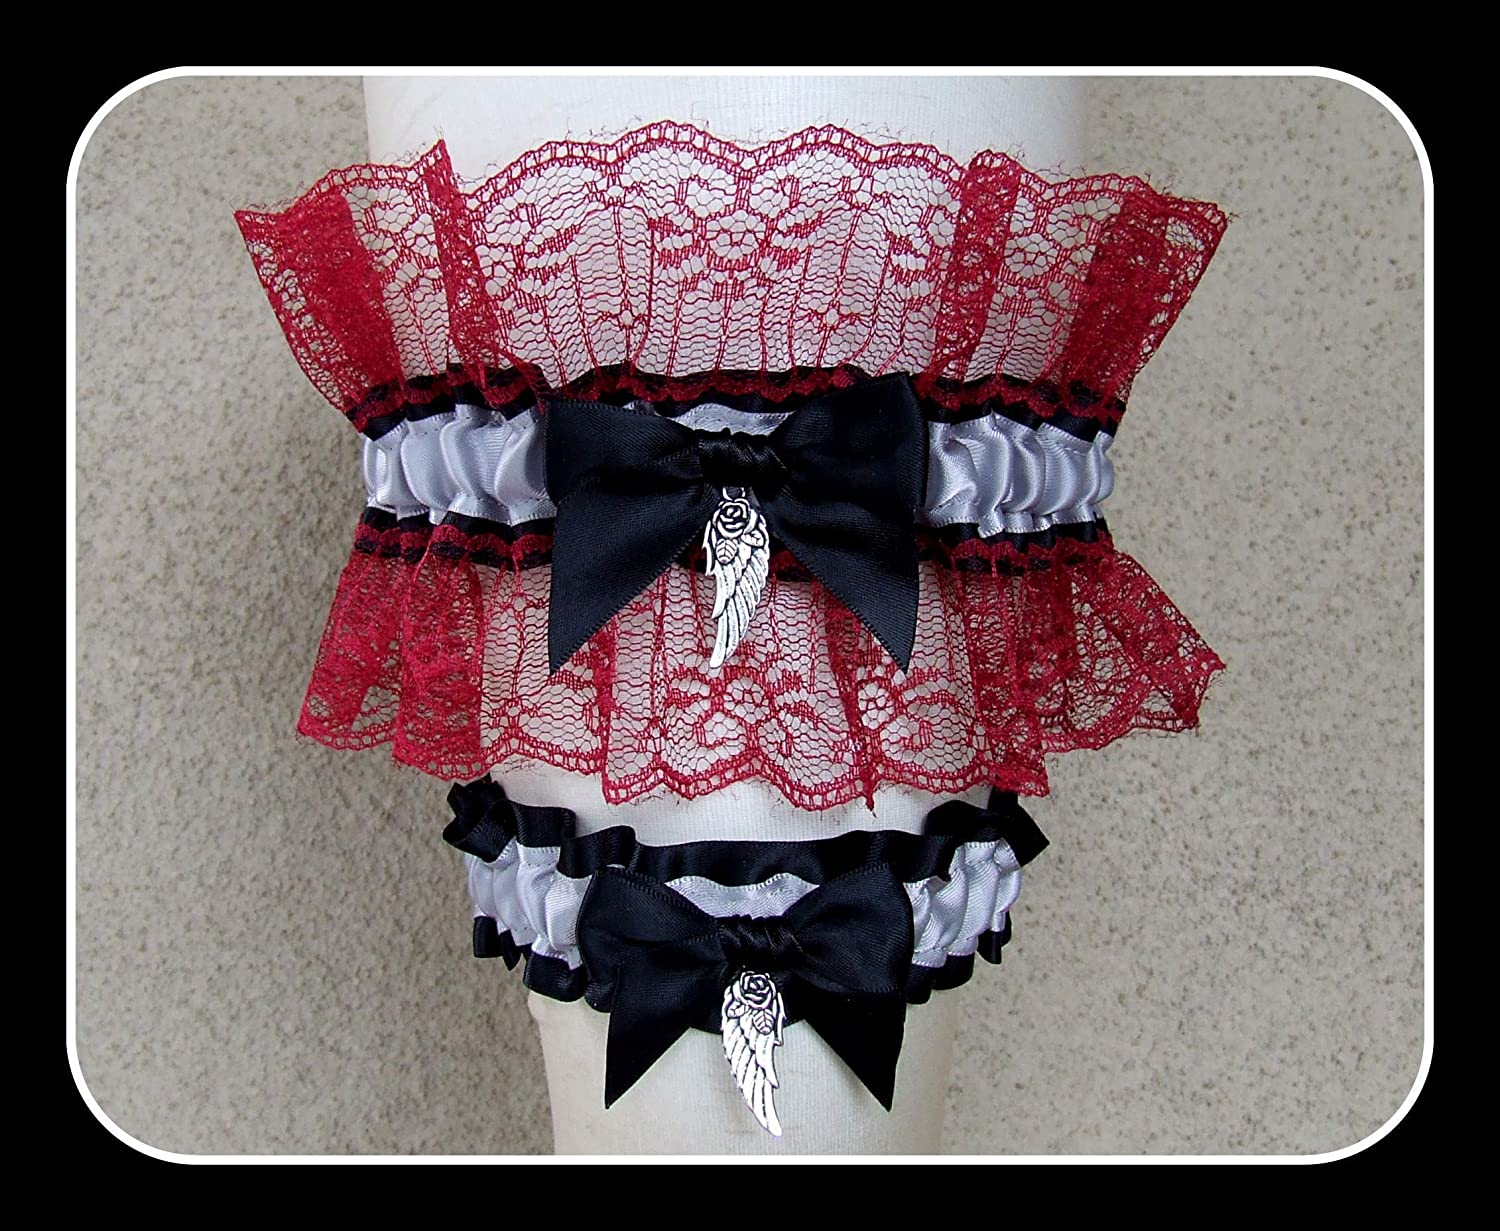 Bridal garters make the perfect gift for her! Personalized garters on lace color of your choice Customizable garters for wedding or prom